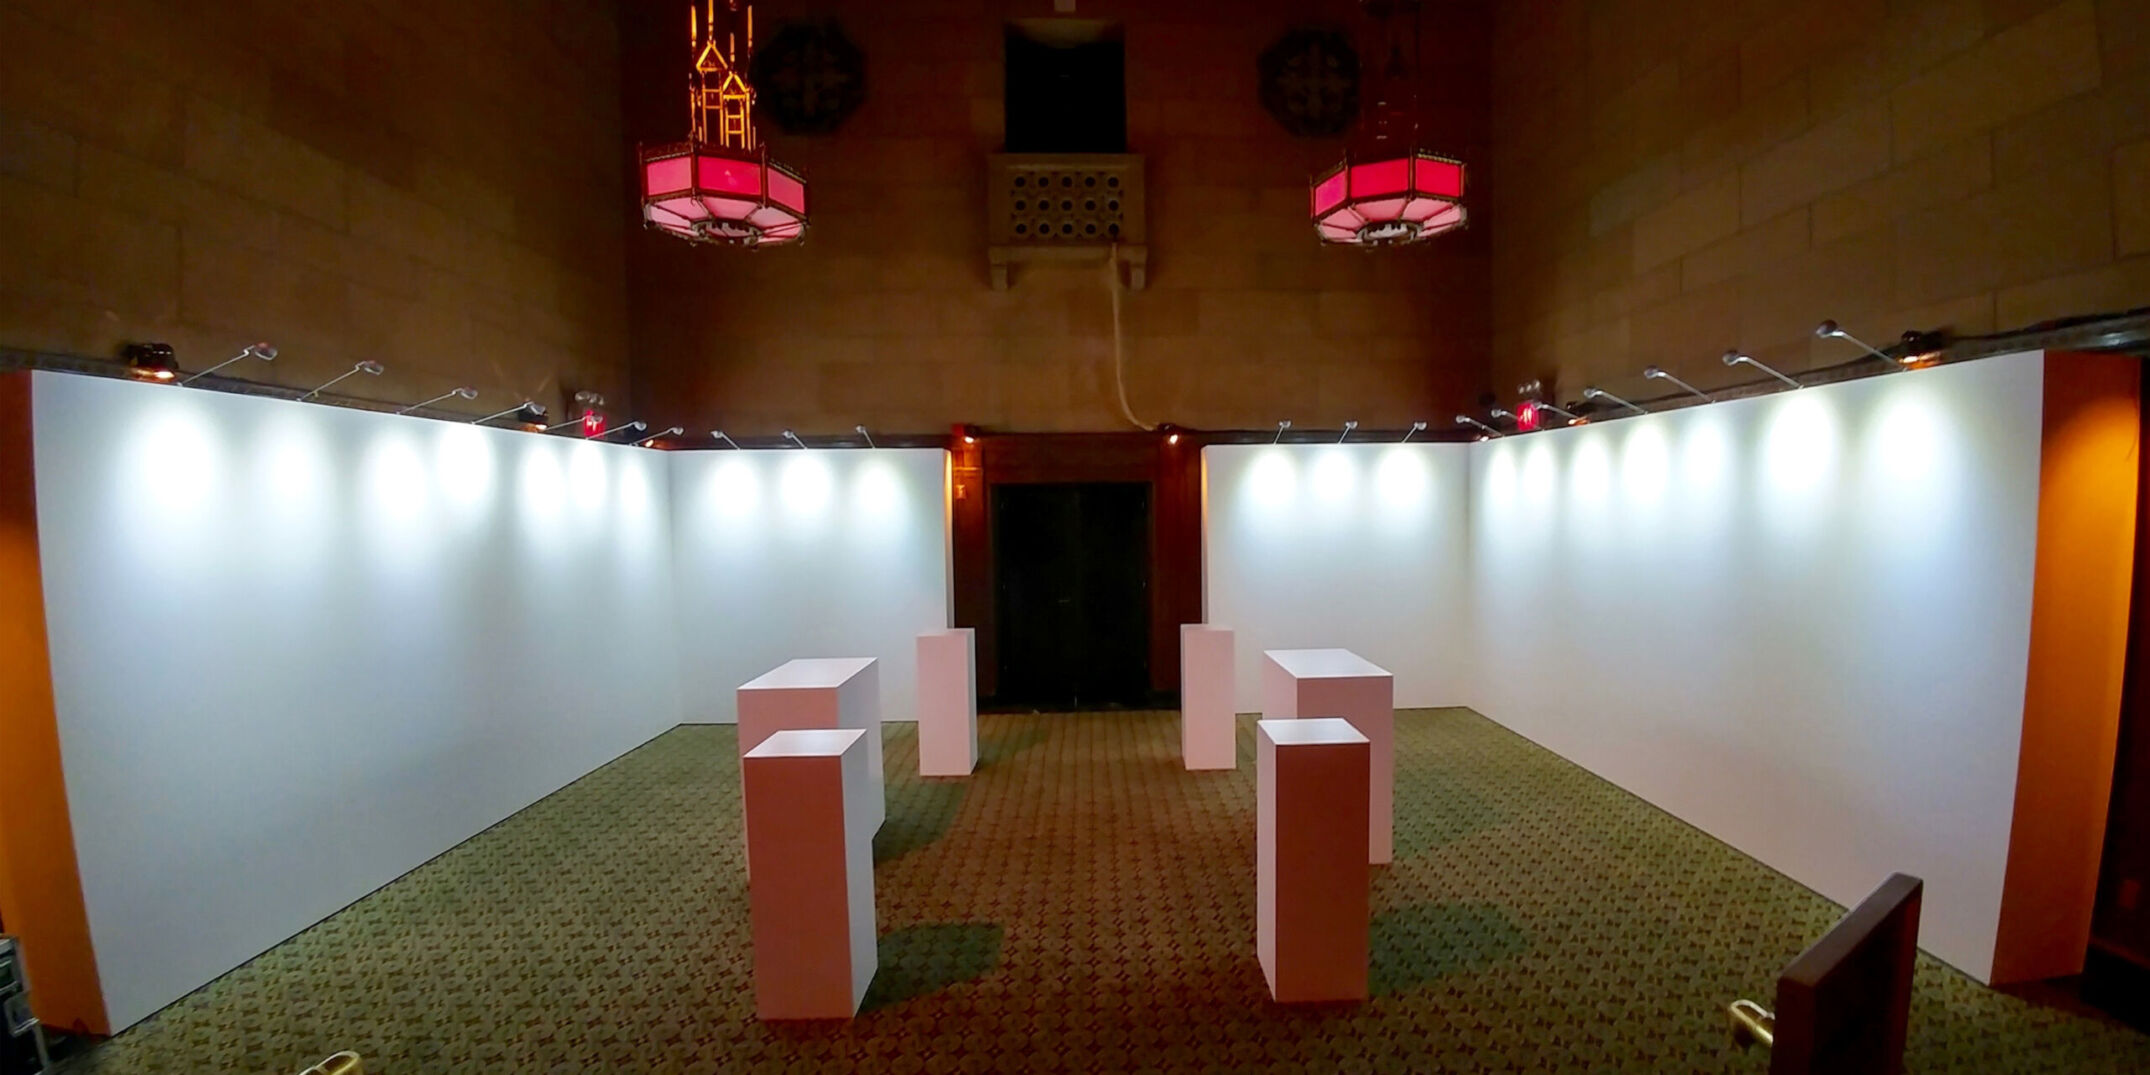 Rental gallery walls and pedestals with stem lights for art exhibit